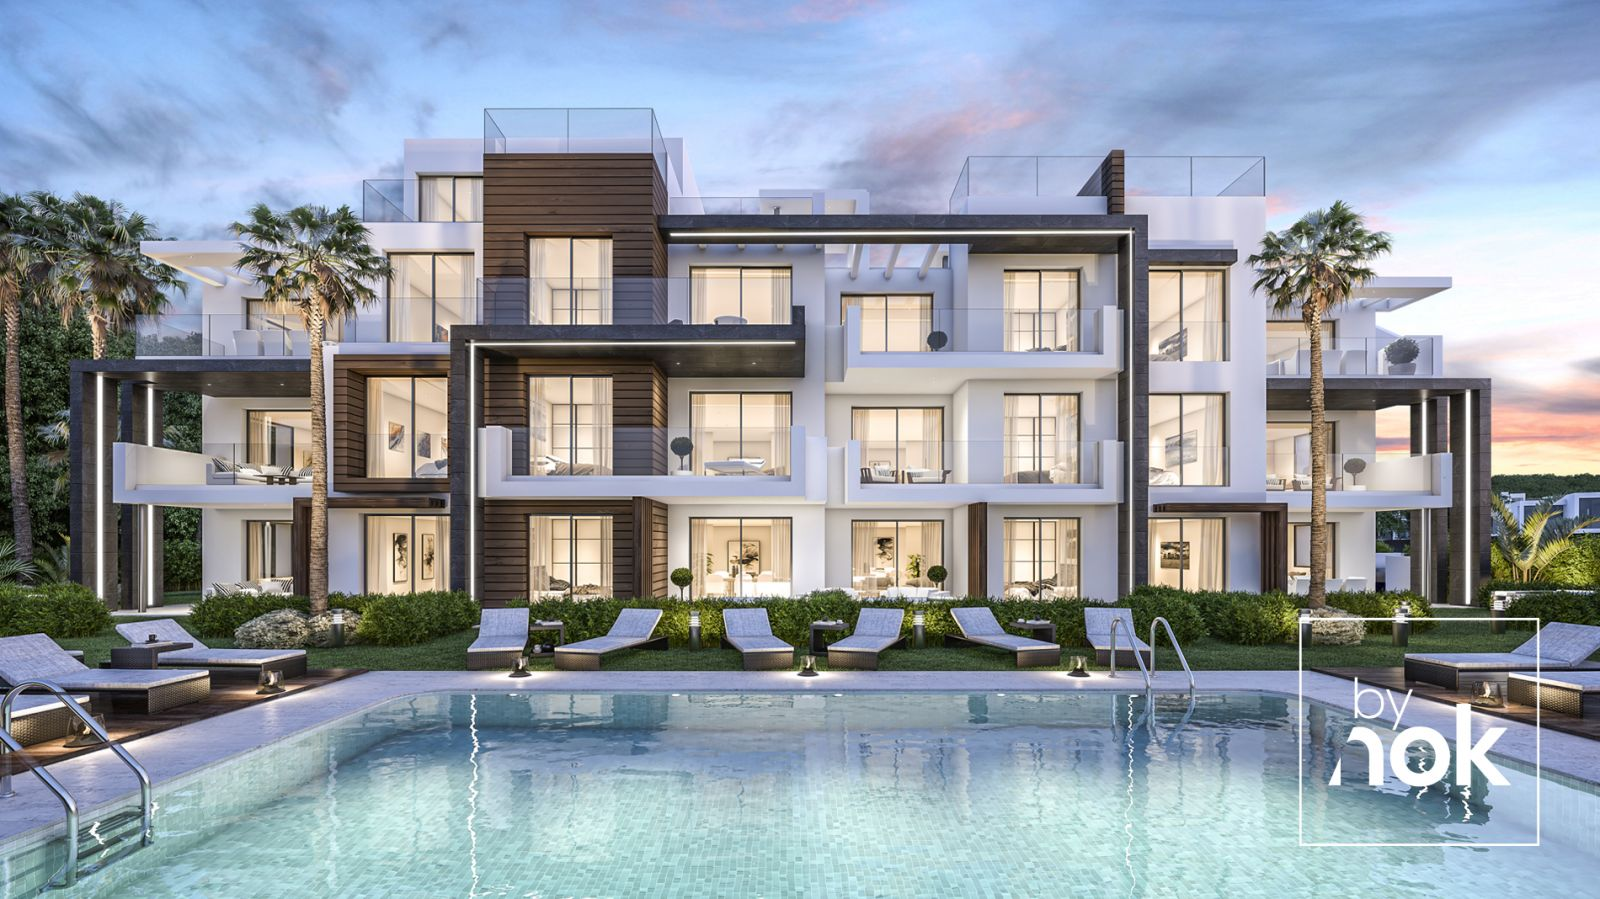 New Build Apartments Marbella - Your Move Spain